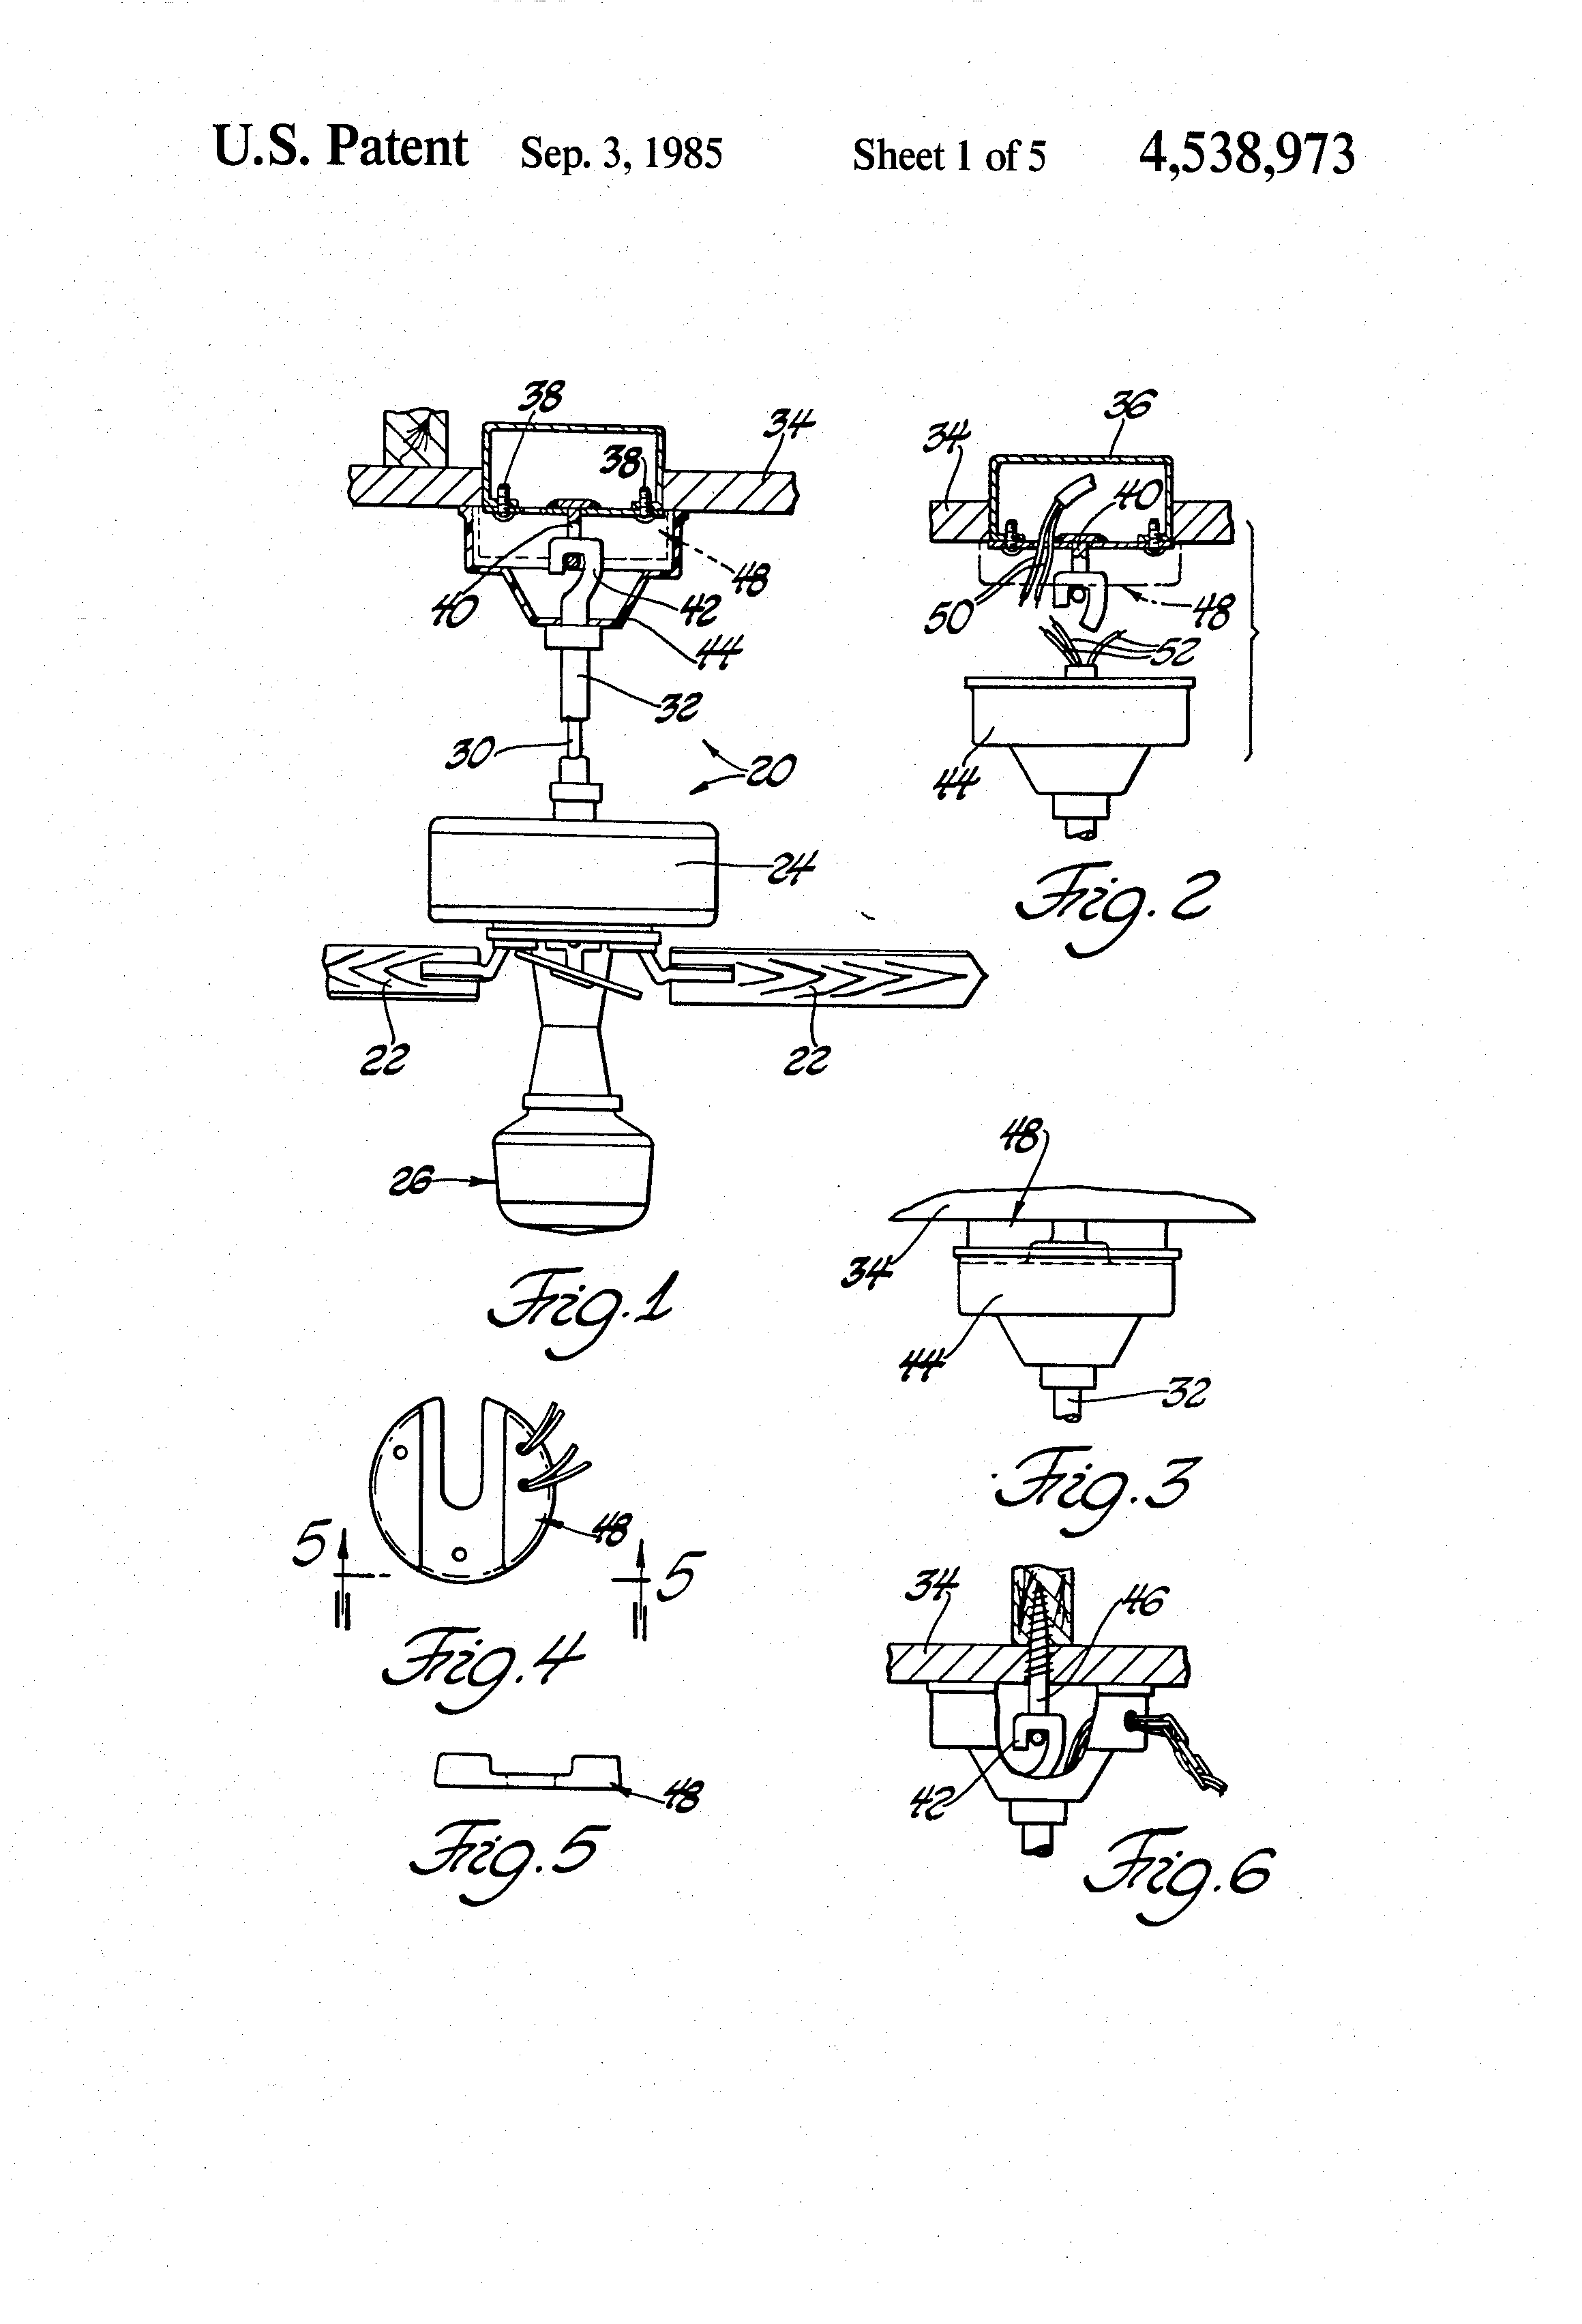 Encon Ceiling Fan Parts Manual Blog Avie Diagram Also Light Switch Wiring Schematic Diagrams